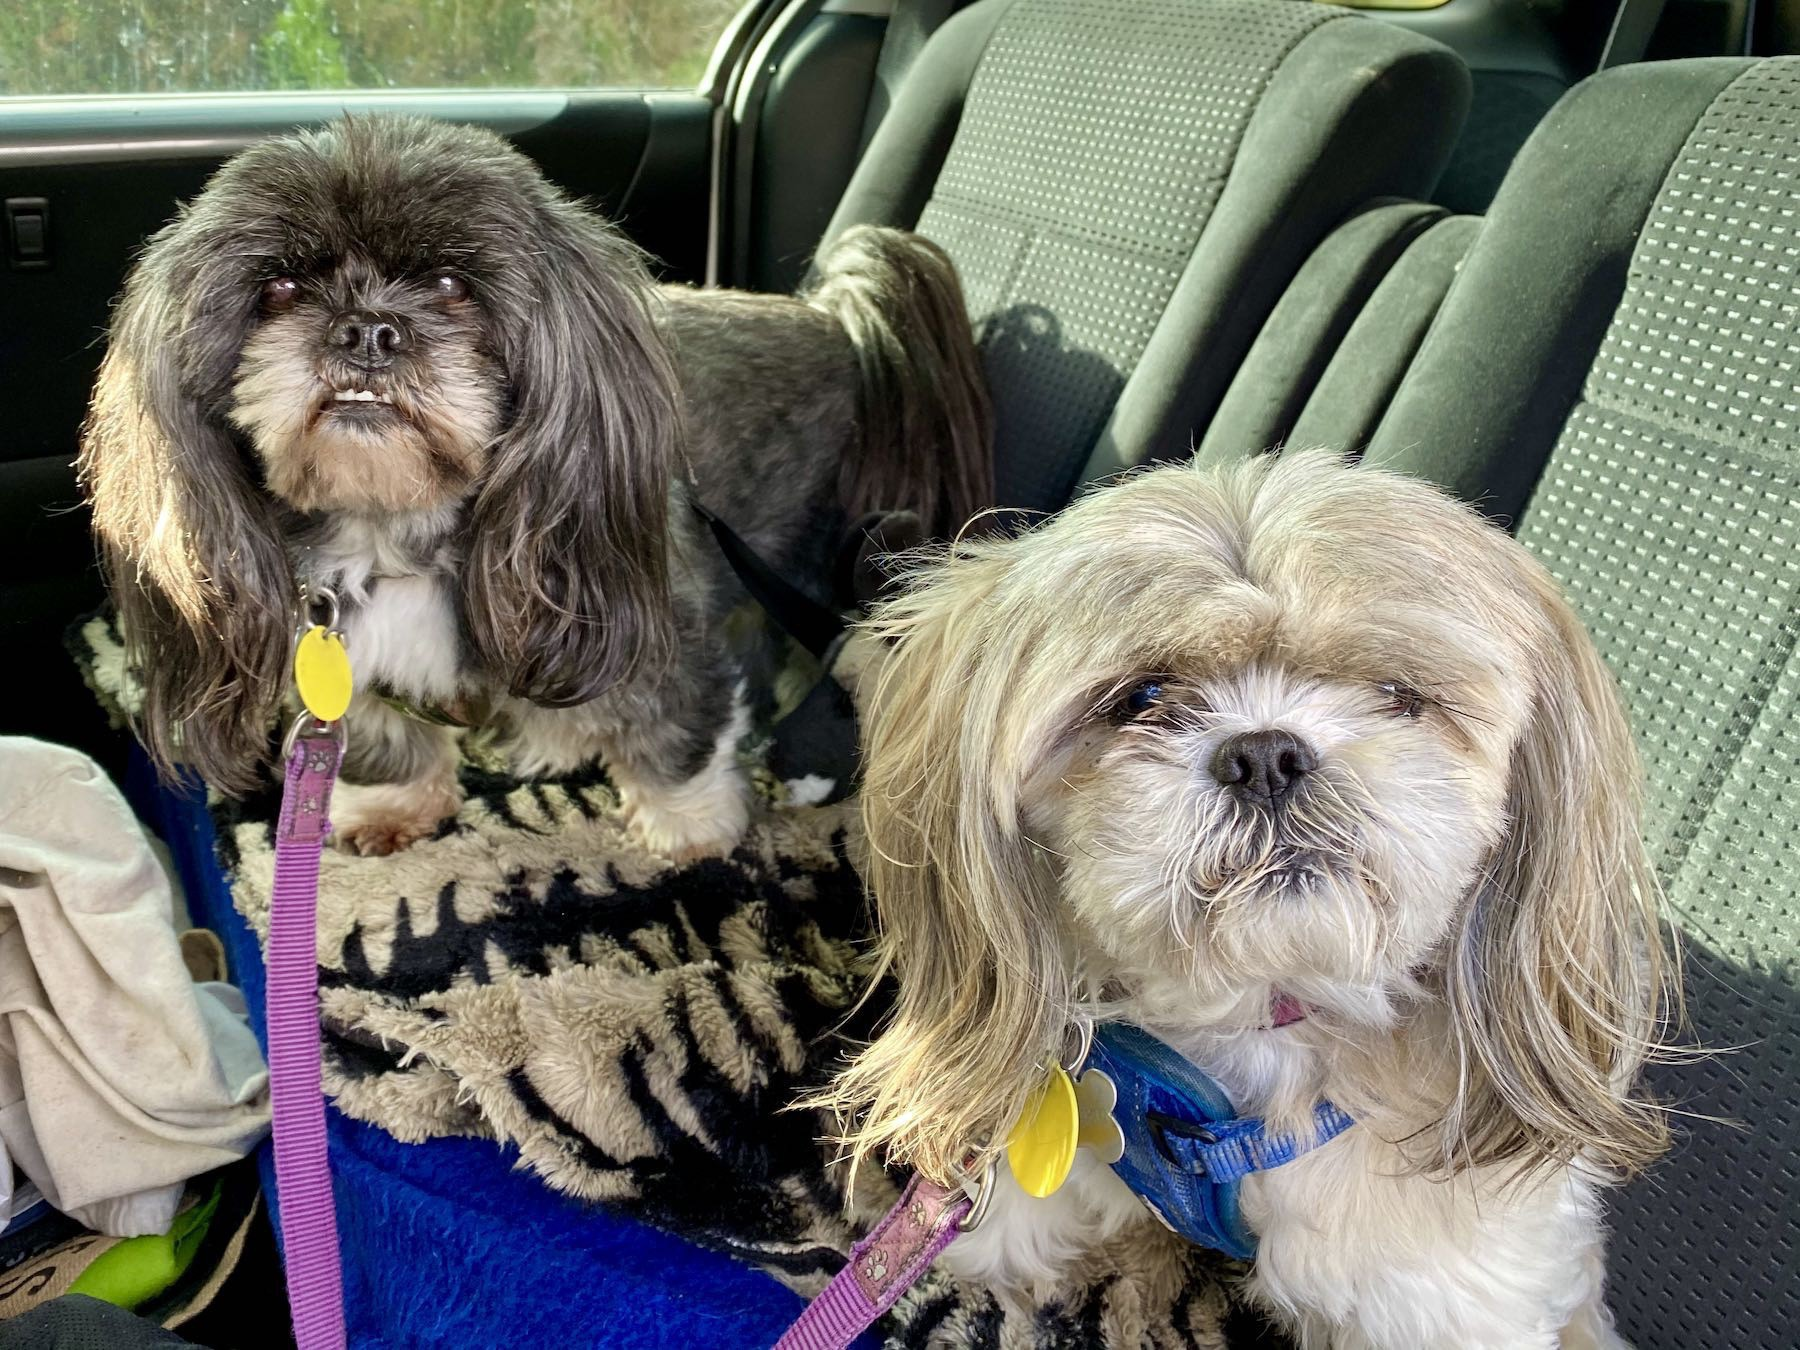 Two shaggy pooches in a car.